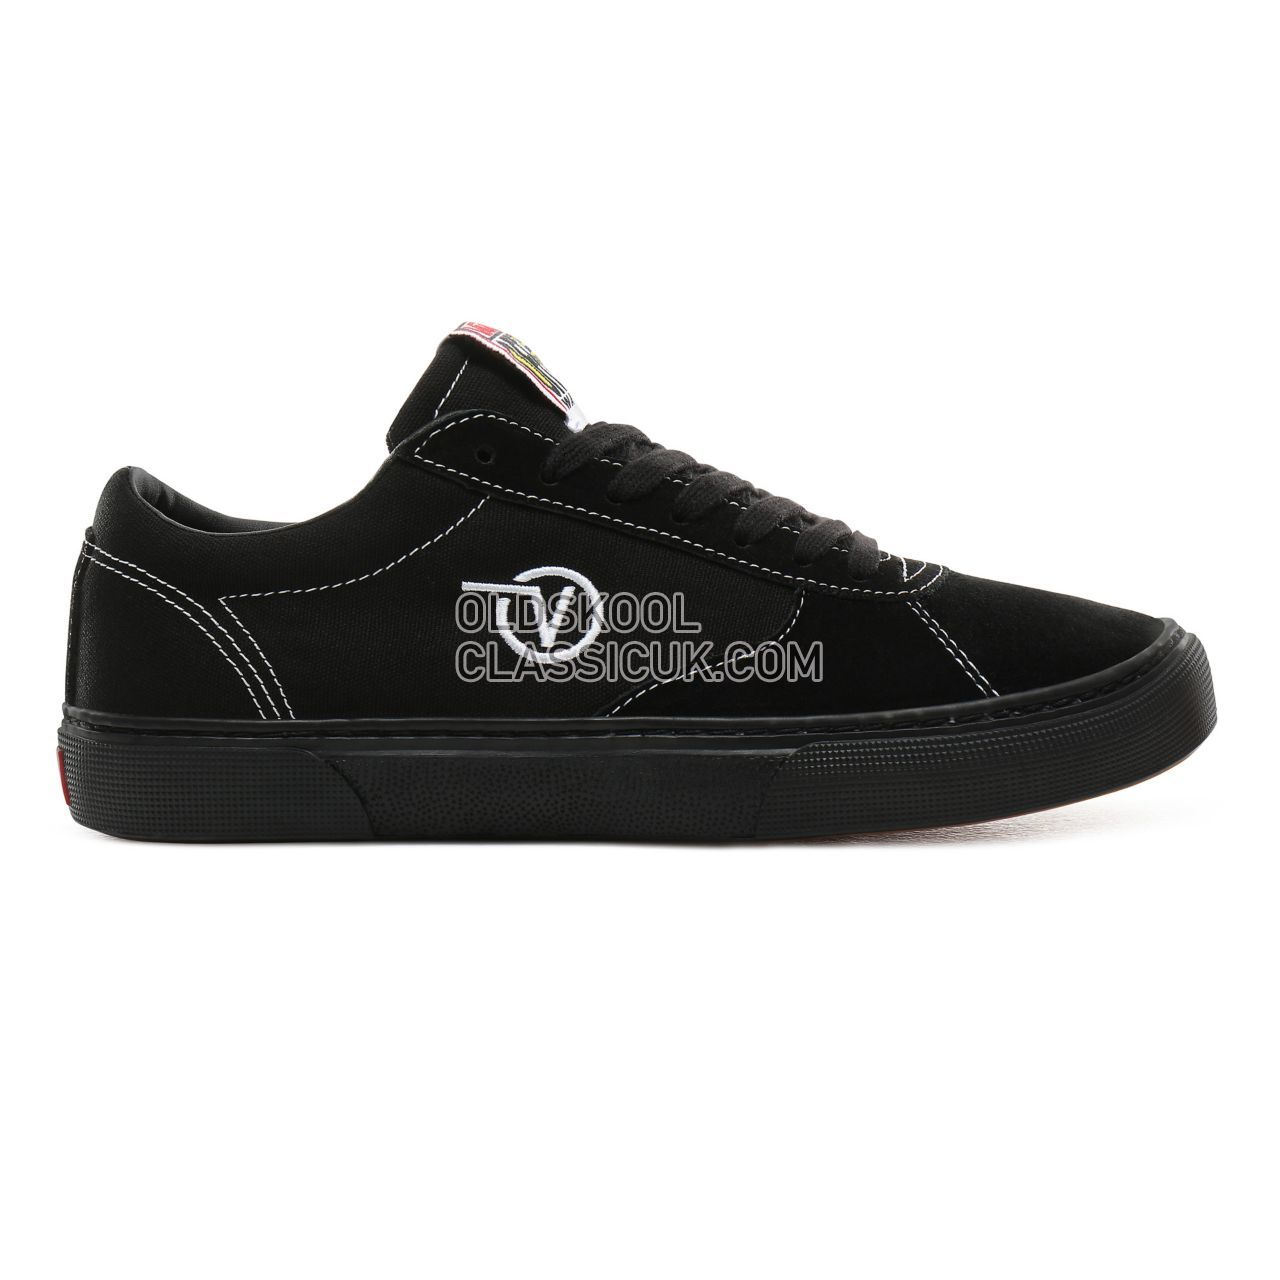 Vans Paradoxxx Sneakers Mens Black/Black VN0A3TKKBKA Shoes